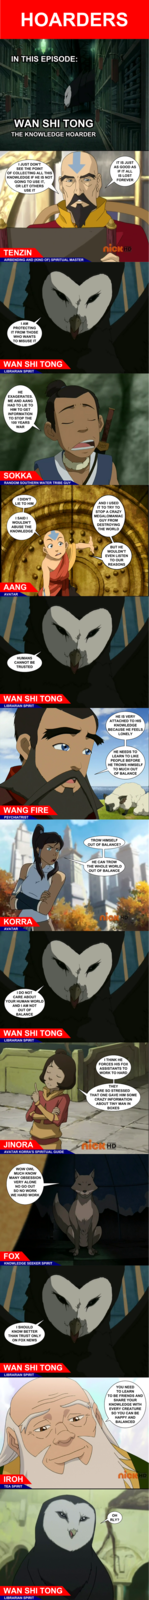 Wan Shi Tong: The Knowledge Hoarder